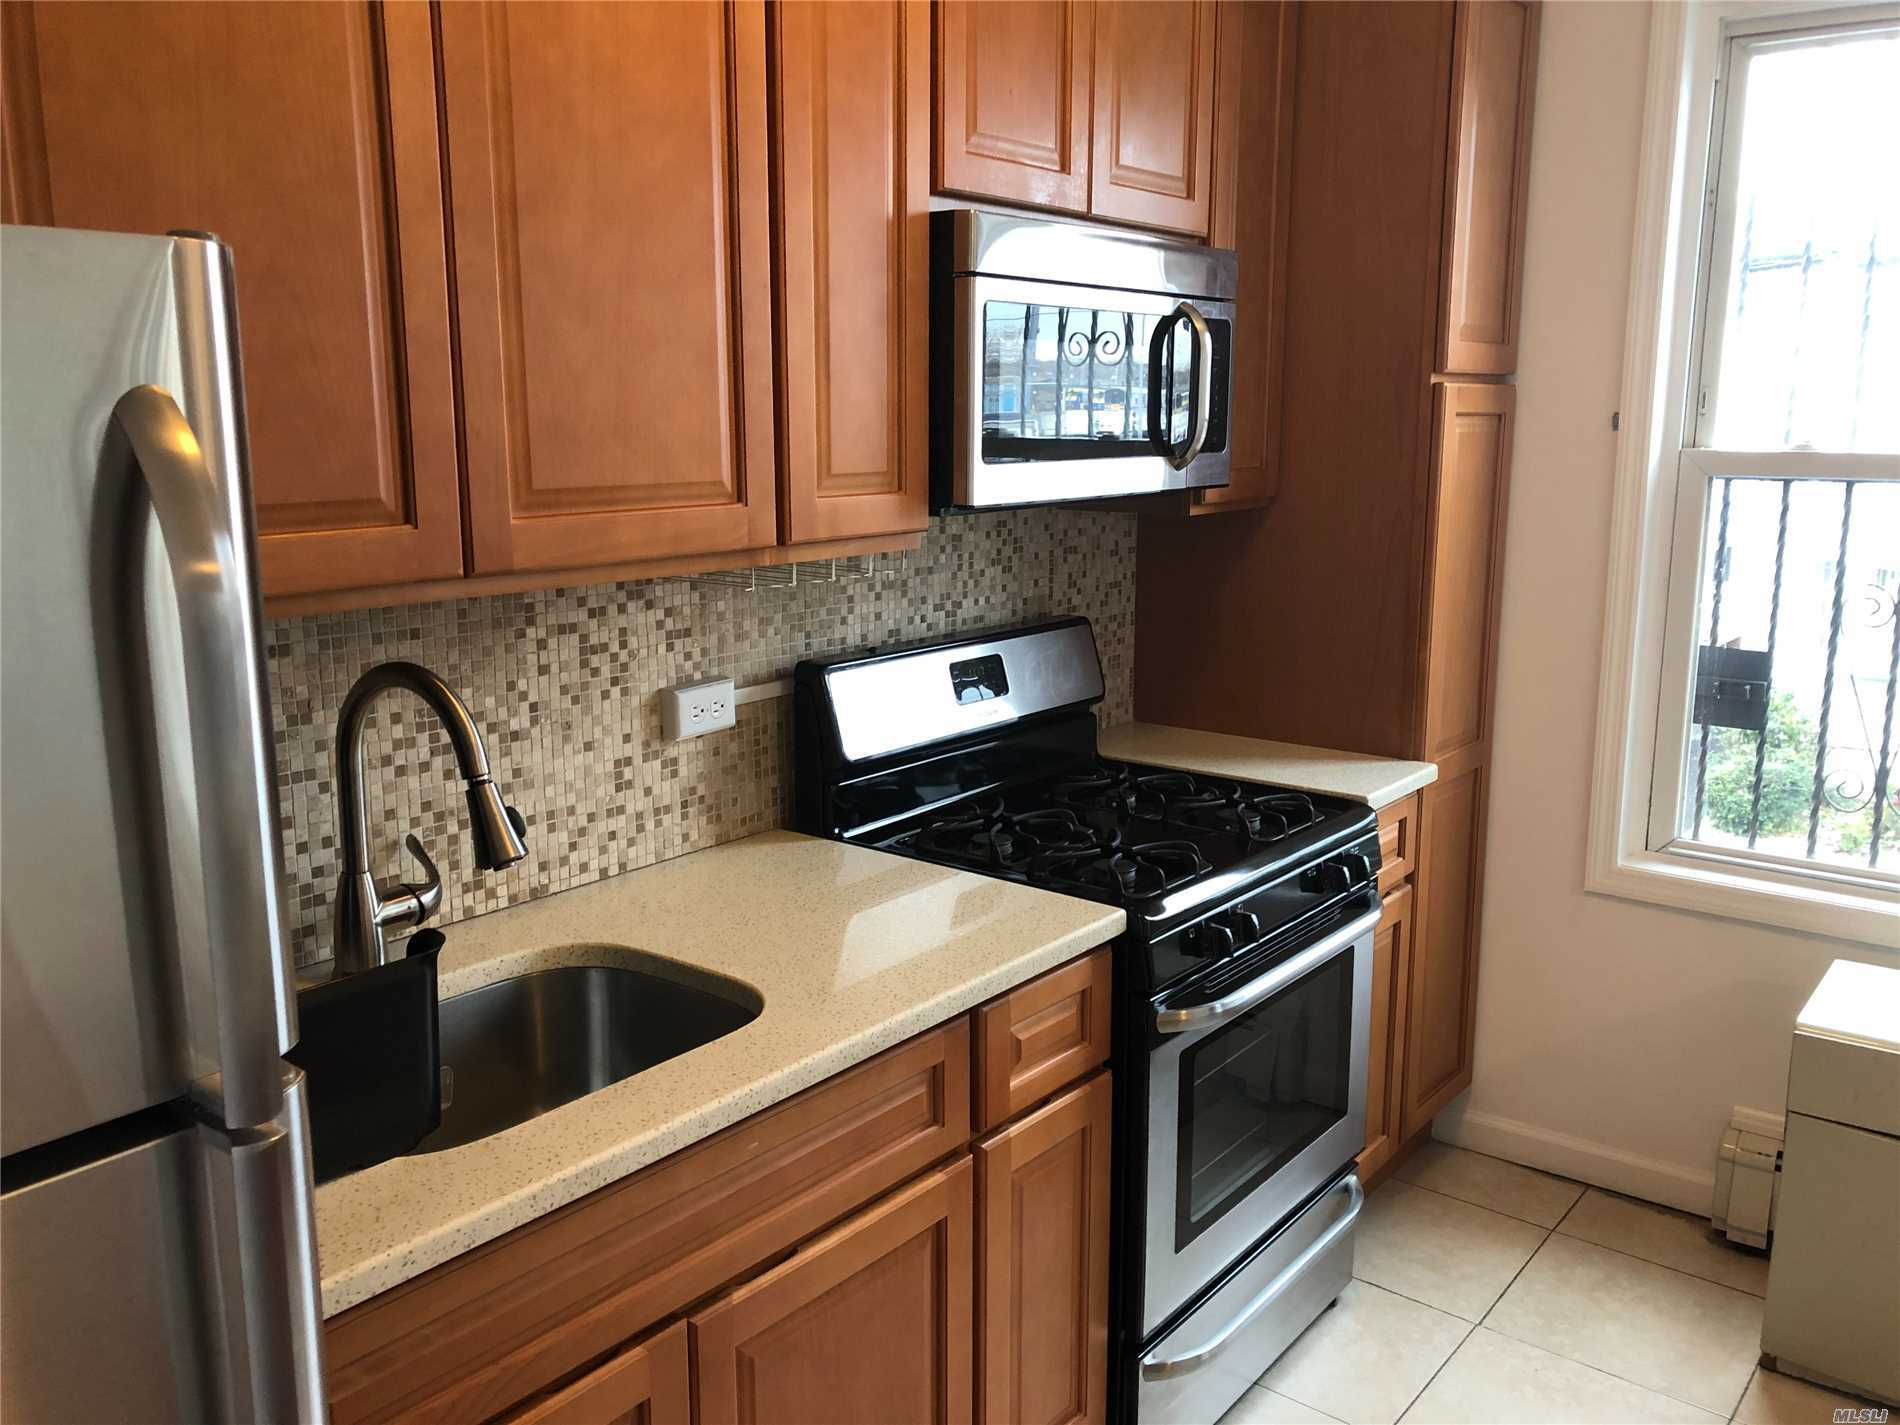 3 Bedroom Apartment For Rent On 2nd Floor. Close To Transportation